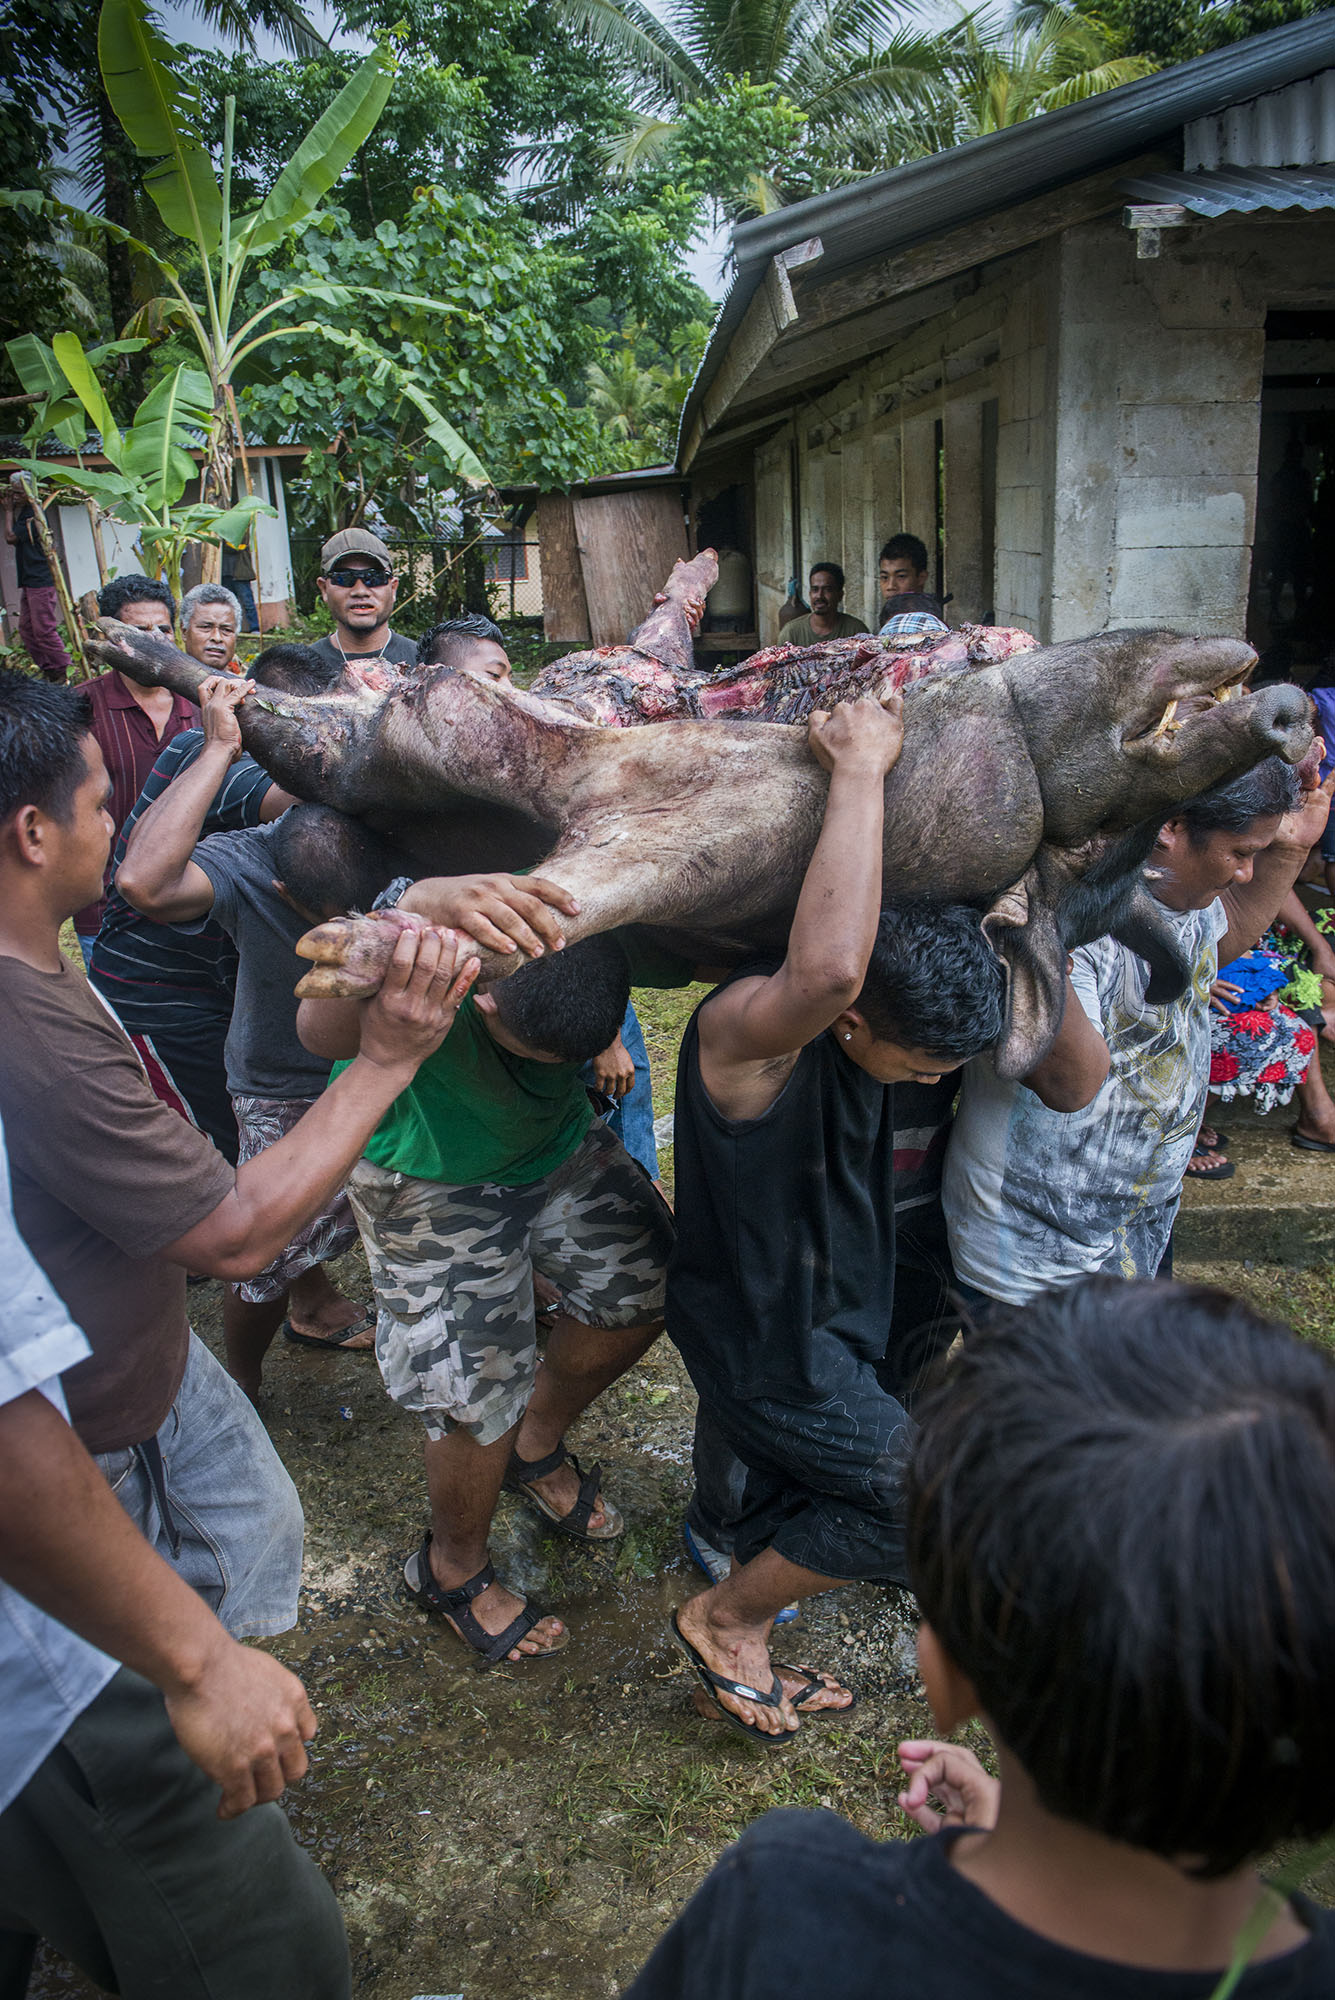 <p>A slaughted boar, part of a traditional feast in Madolenhimw village in Pohnpei. Photo by Mark Edward Harris.</p>